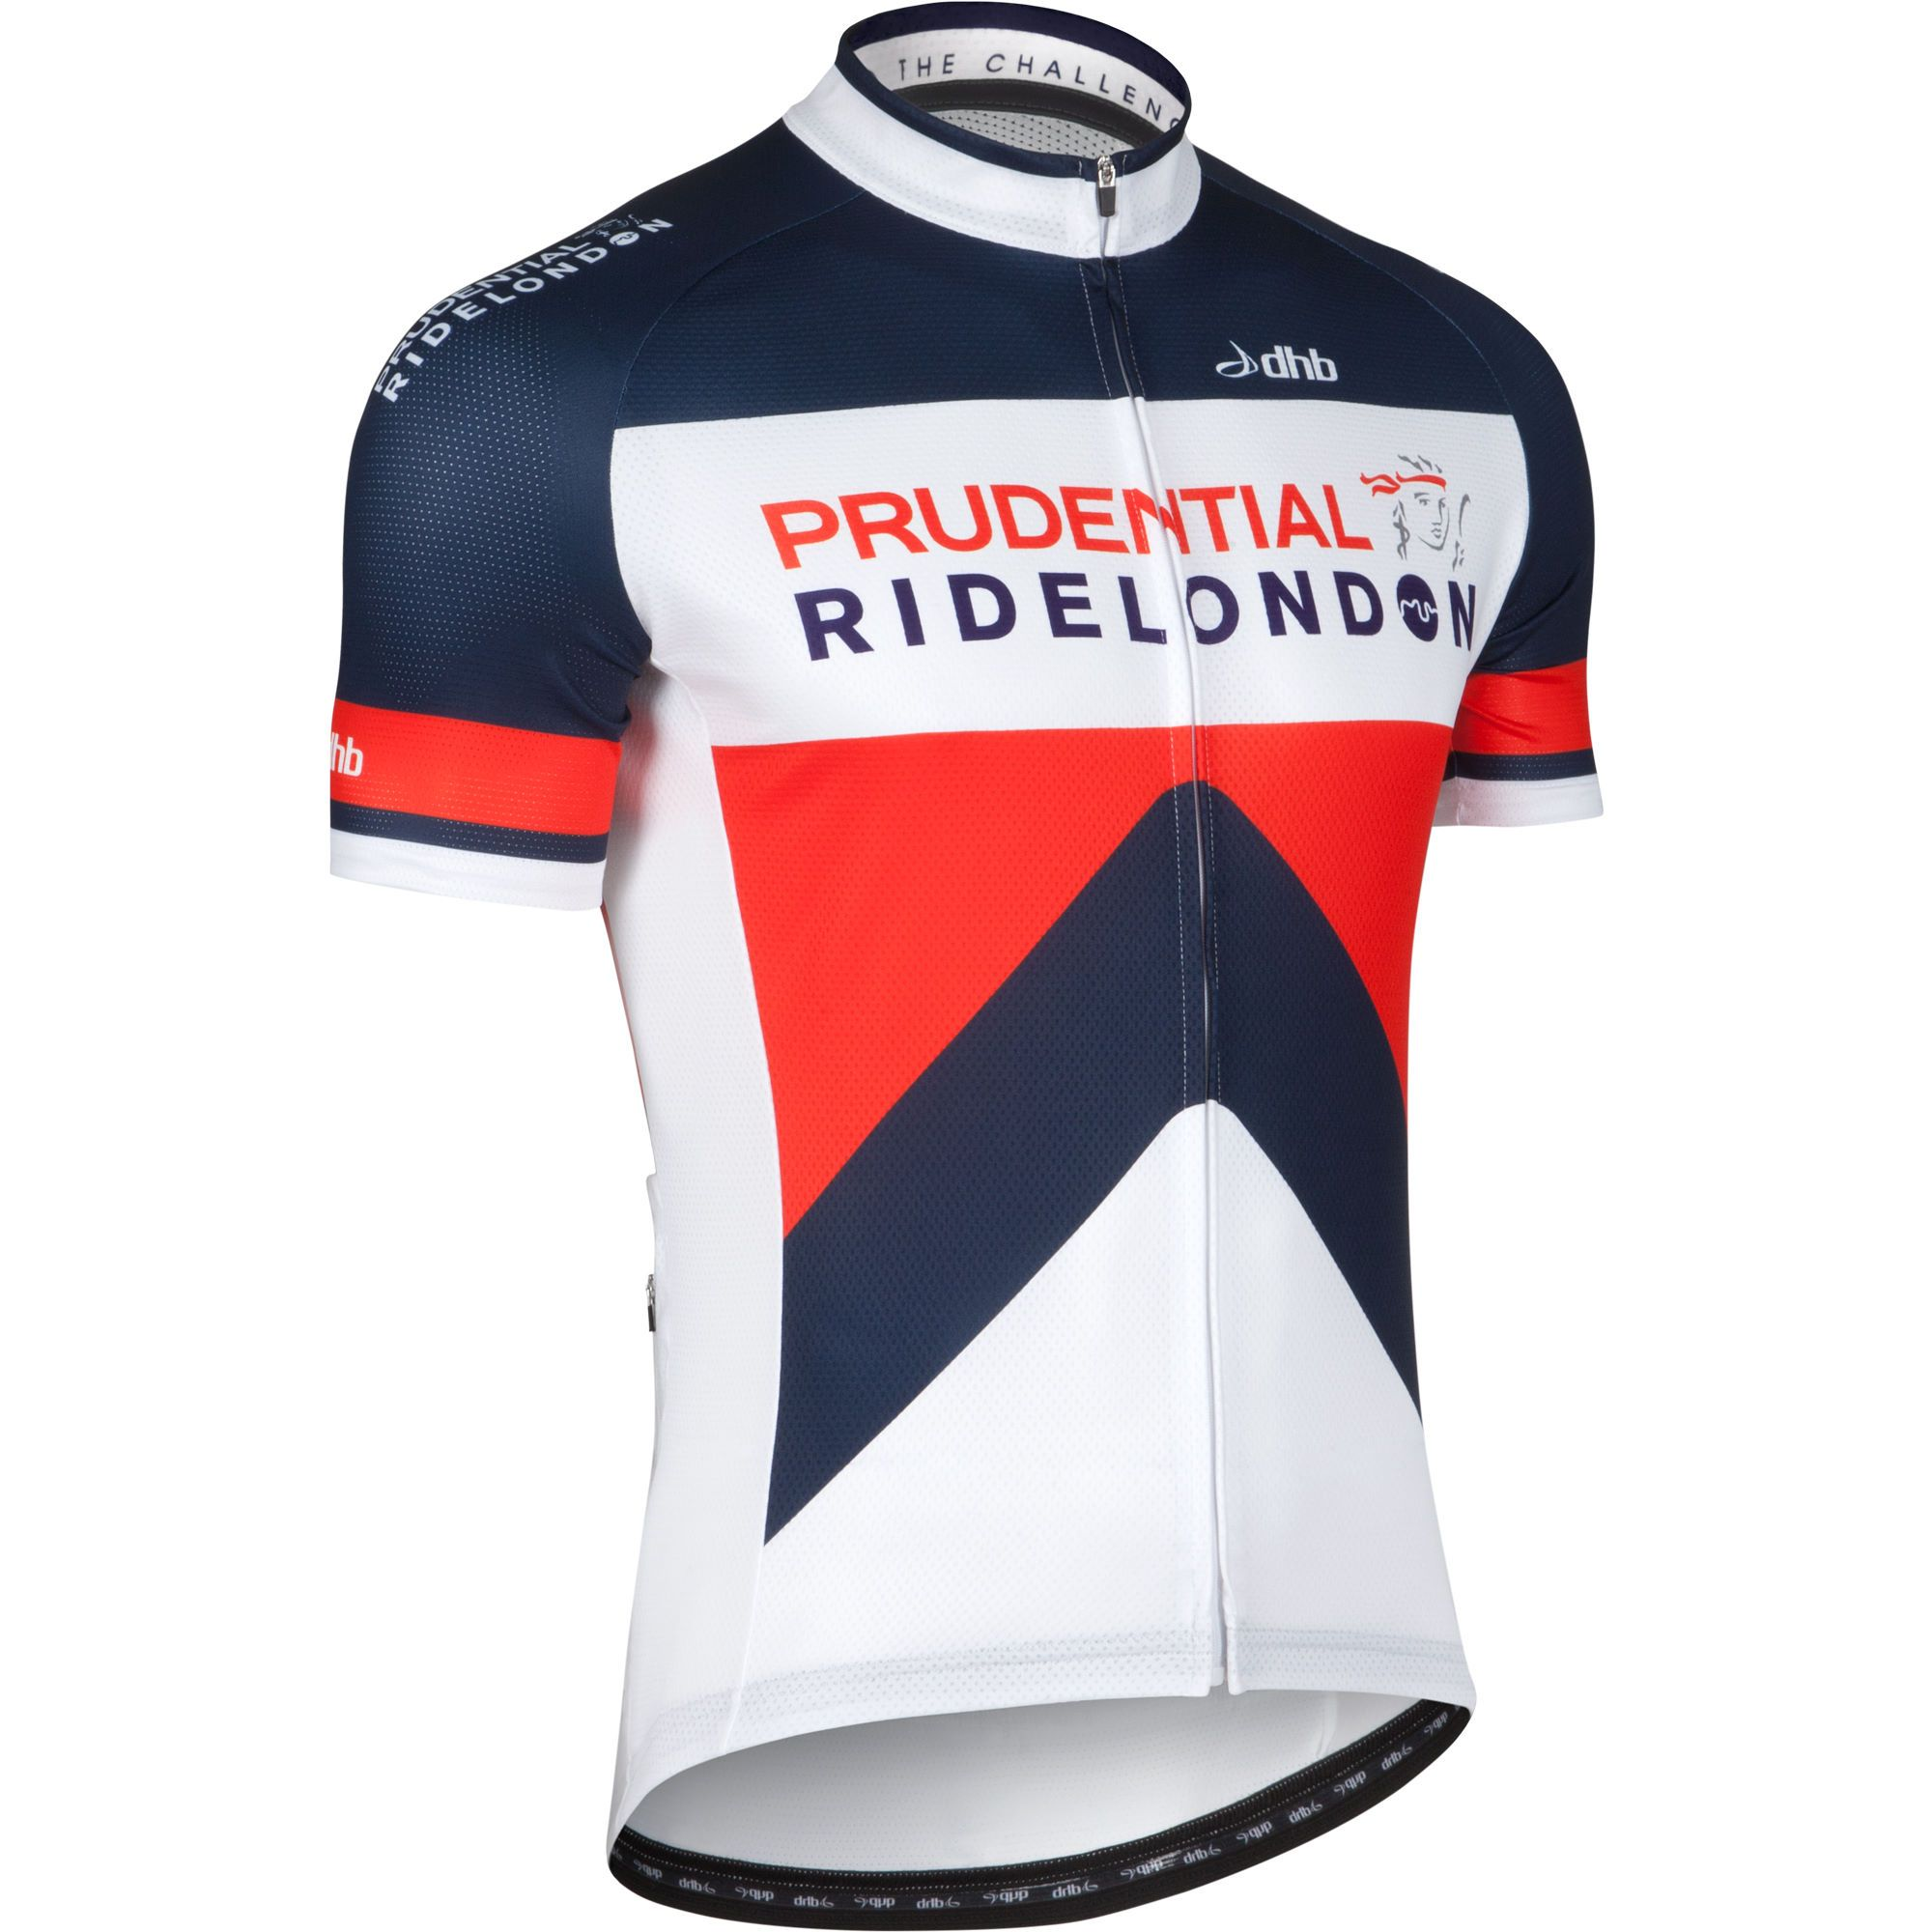 d3308f236 prudential ride london jersey - Google Search